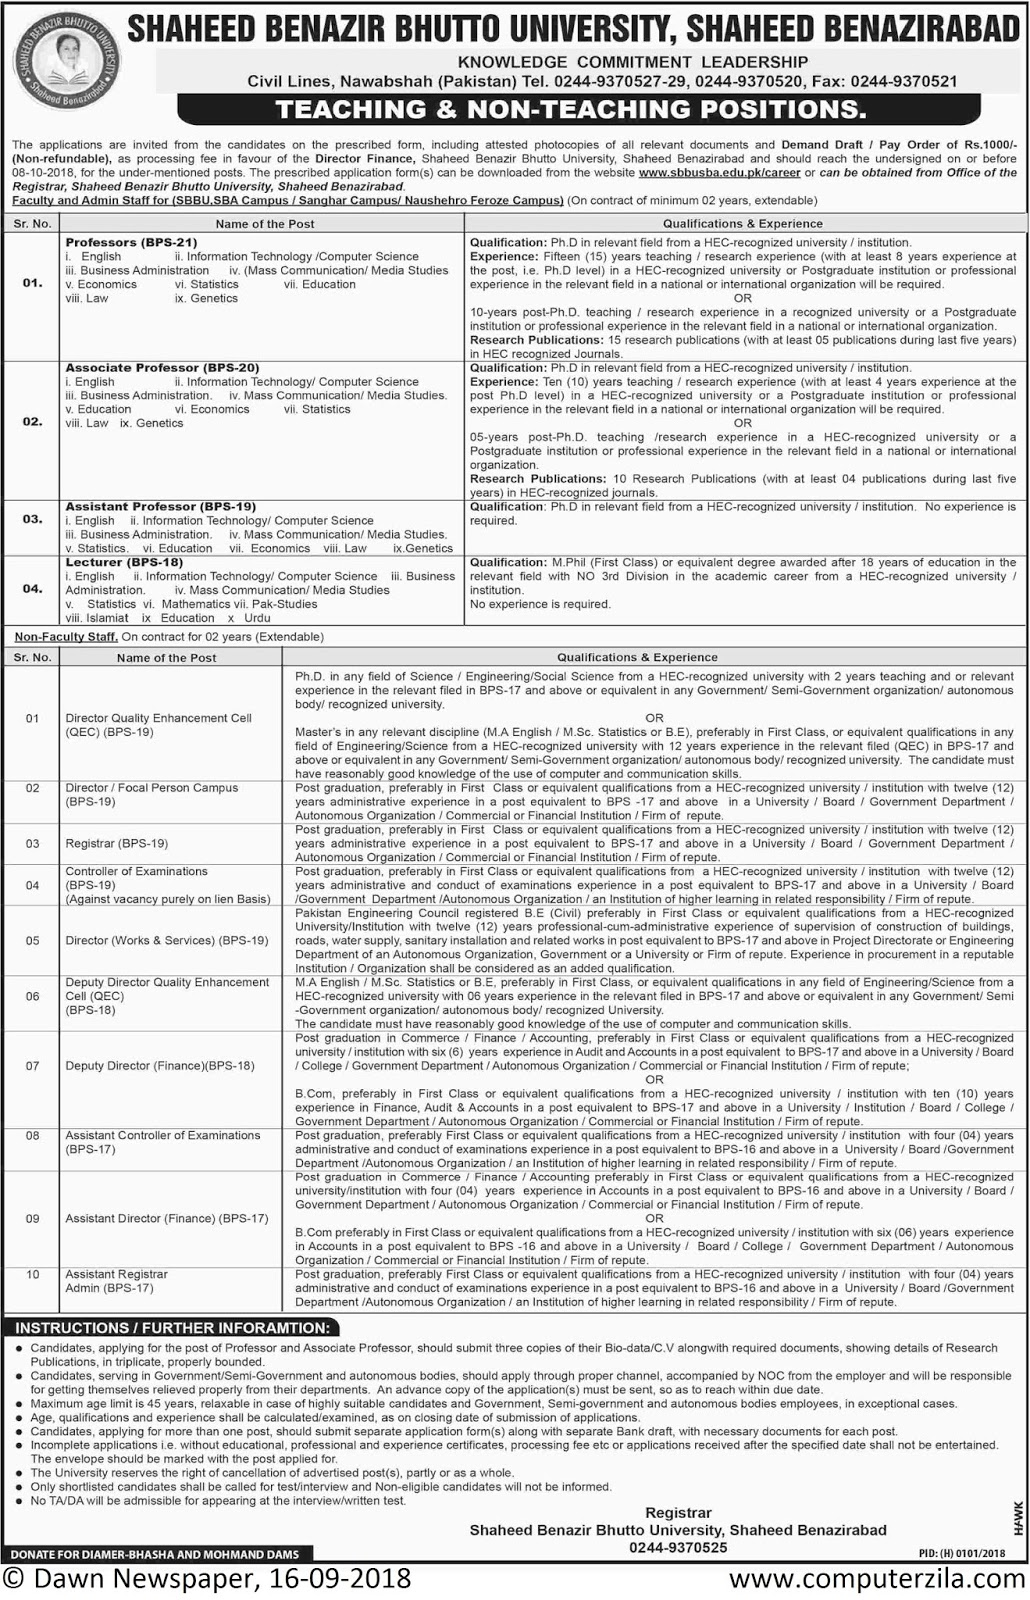 Teaching & Non-Teaching Positions at Shaheed Benazir Bhutto University, Shaheed Benazirabad